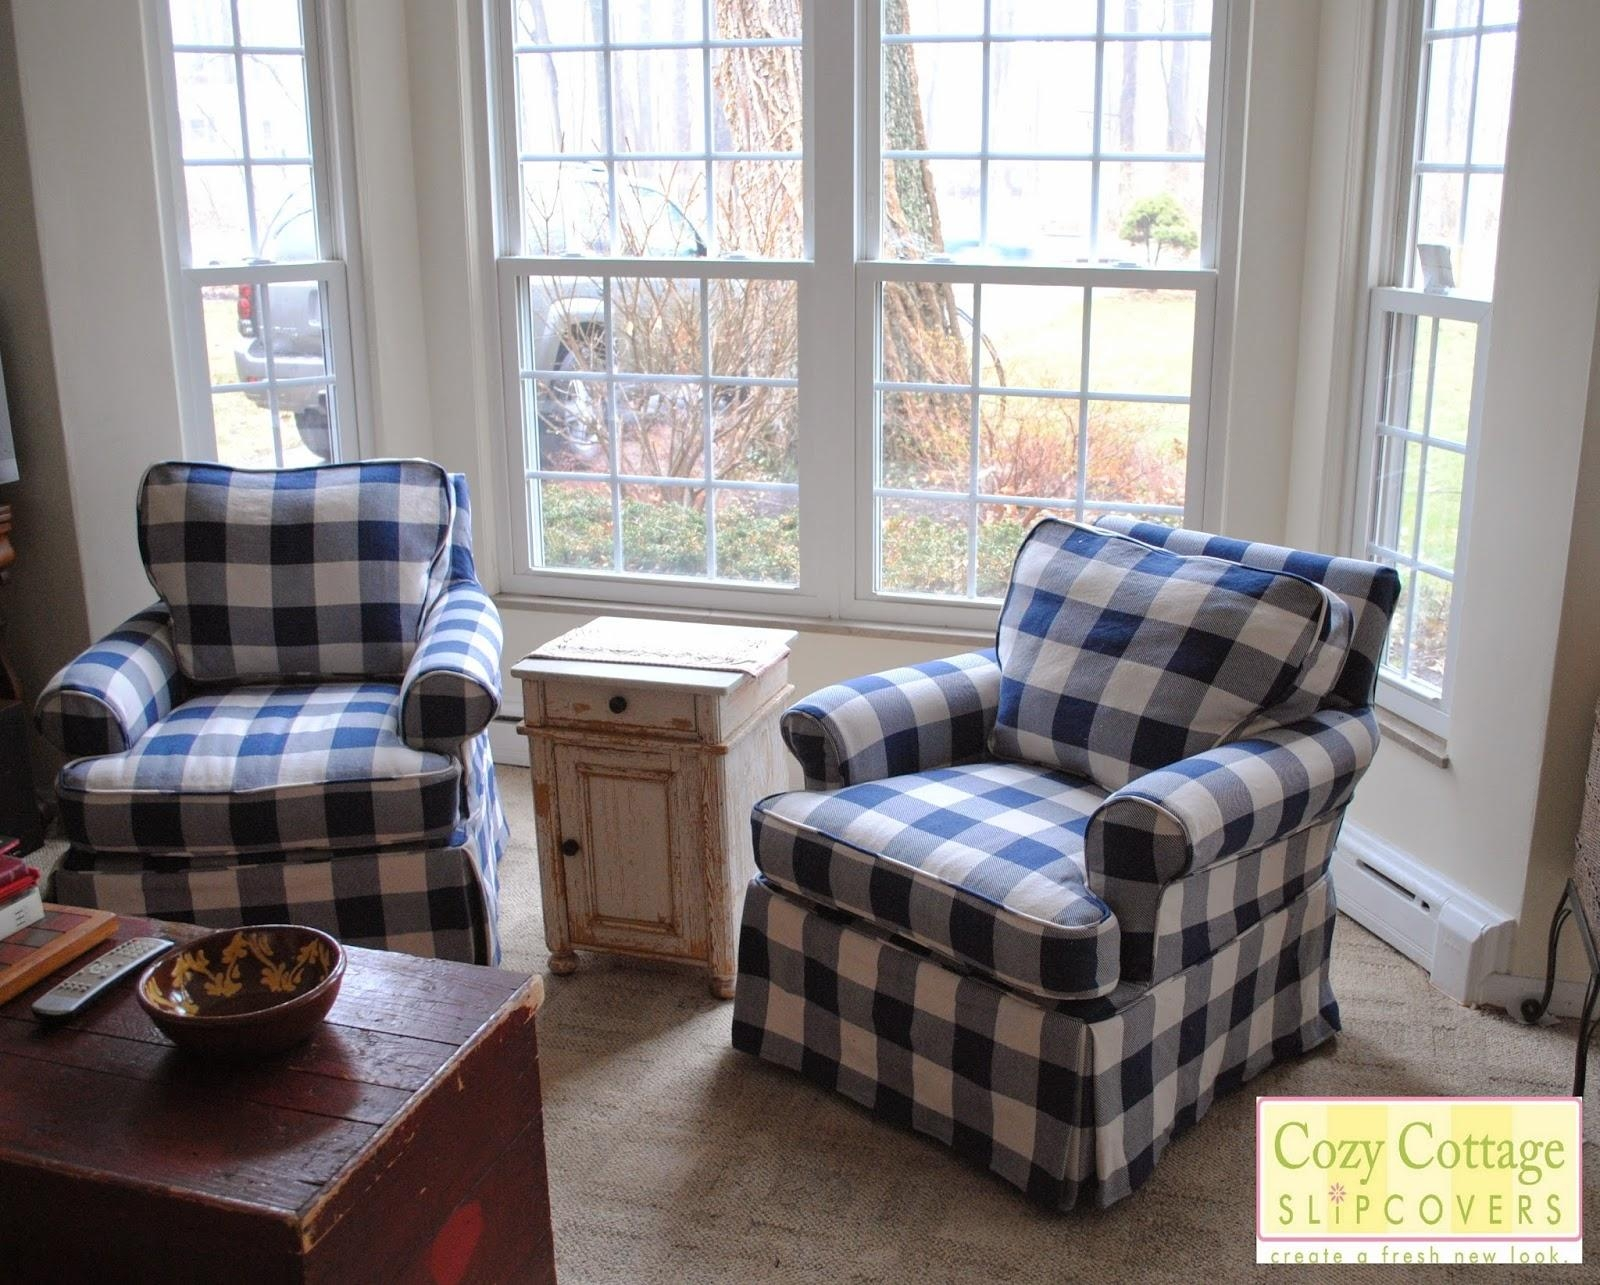 Cozy Cottage Slipcovers: Blue And White Buffalo Check Slipcovers Regarding Buffalo Check Sofas (Image 15 of 20)